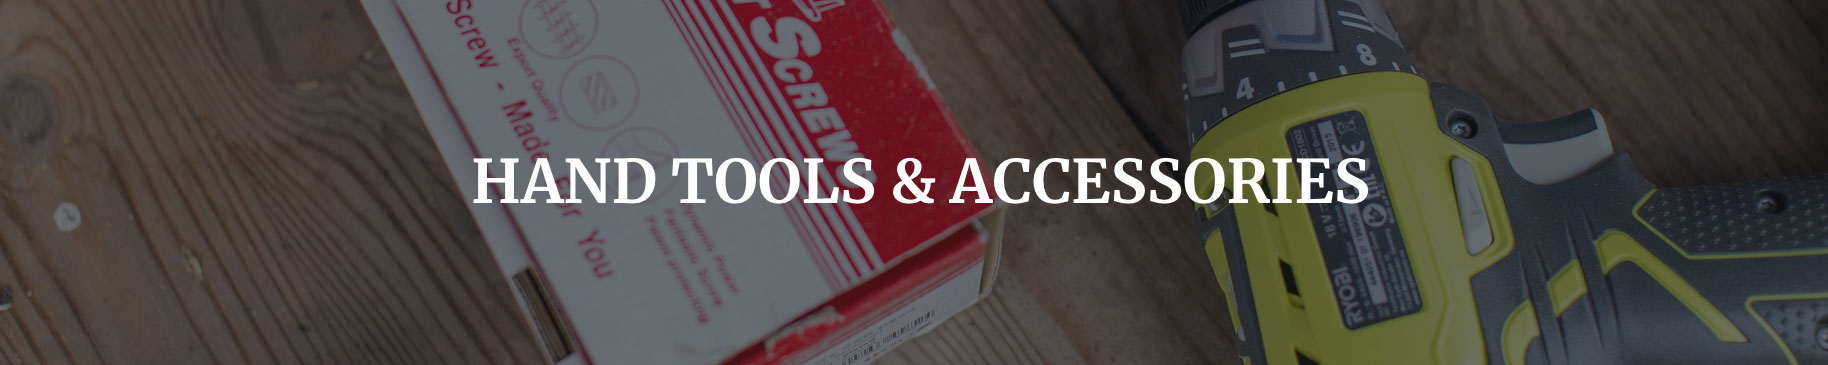 hand tools and accessories vip industrial supplies perth